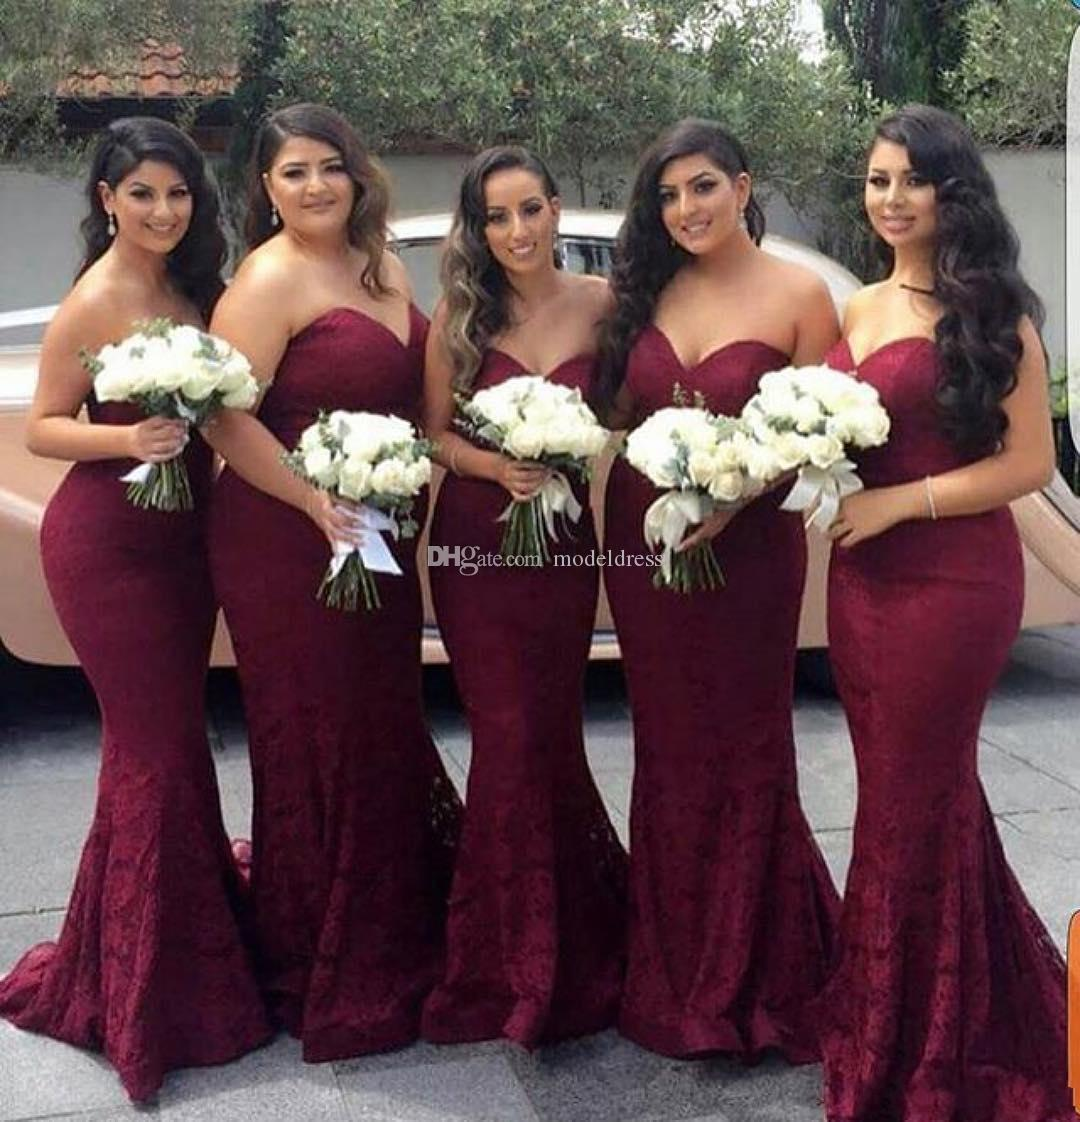 Charming Burgundy Lace Bridesmaids Dresses 2019 Sweetheart Mermaid Long Country Maid of Honor Dress Wedding Guest Prom Party Gowns Cheap